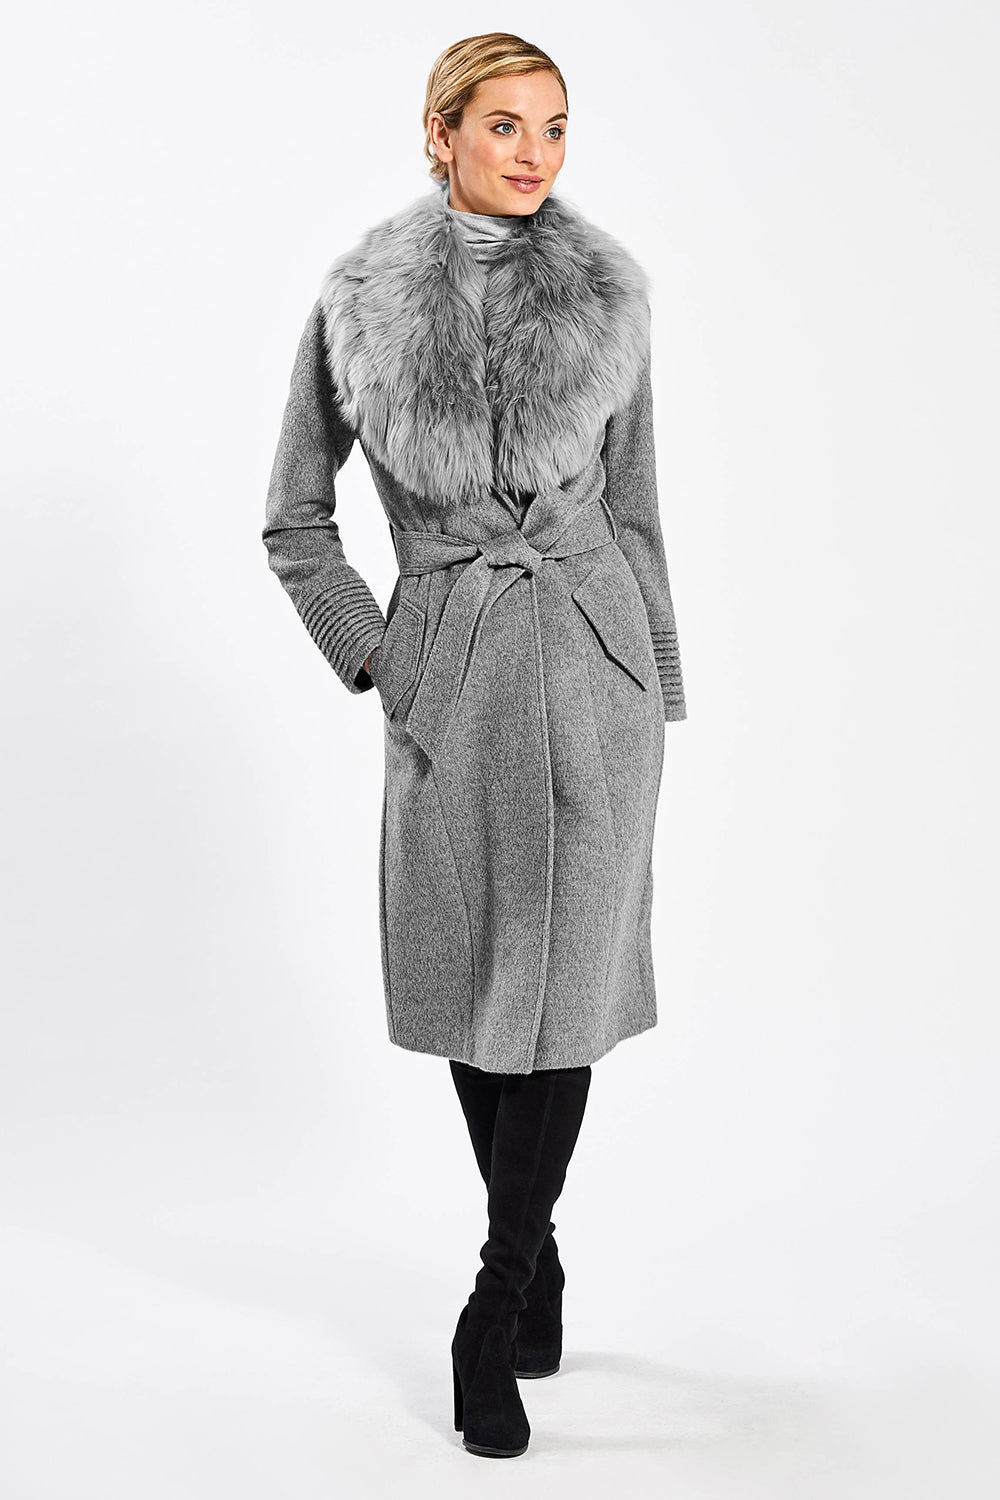 Sentaler Long Coat with Fur Collar featured in Baby Alpaca and available in Shale Grey. Seen from front.